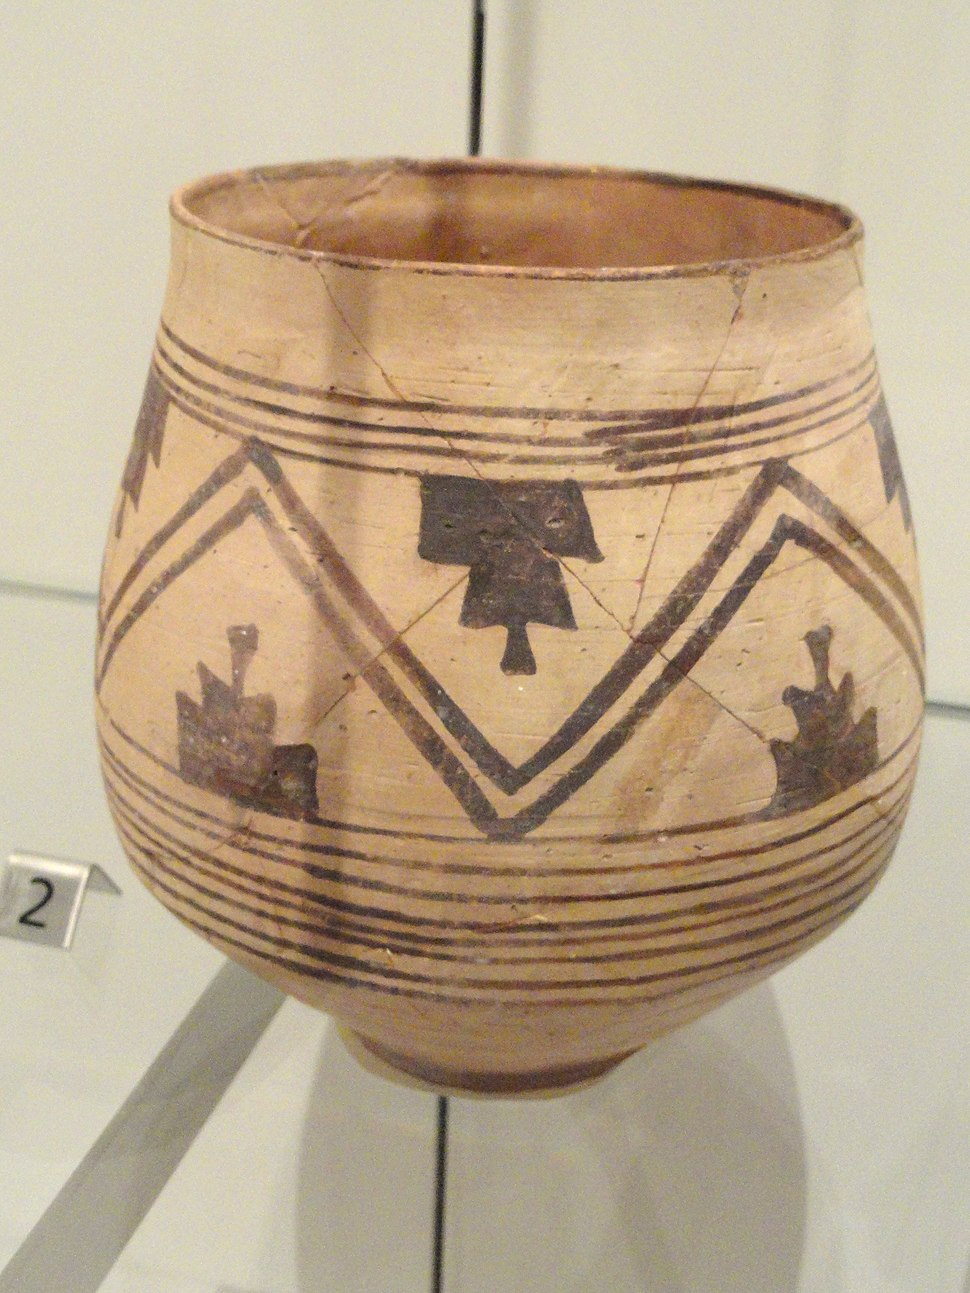 Jar, Indus Valley Tradition, Harappan Phase, Quetta, Southern Baluchistan, Pakistan, c. 2500-1900 BC - Royal Ontario Museum - DSC09717